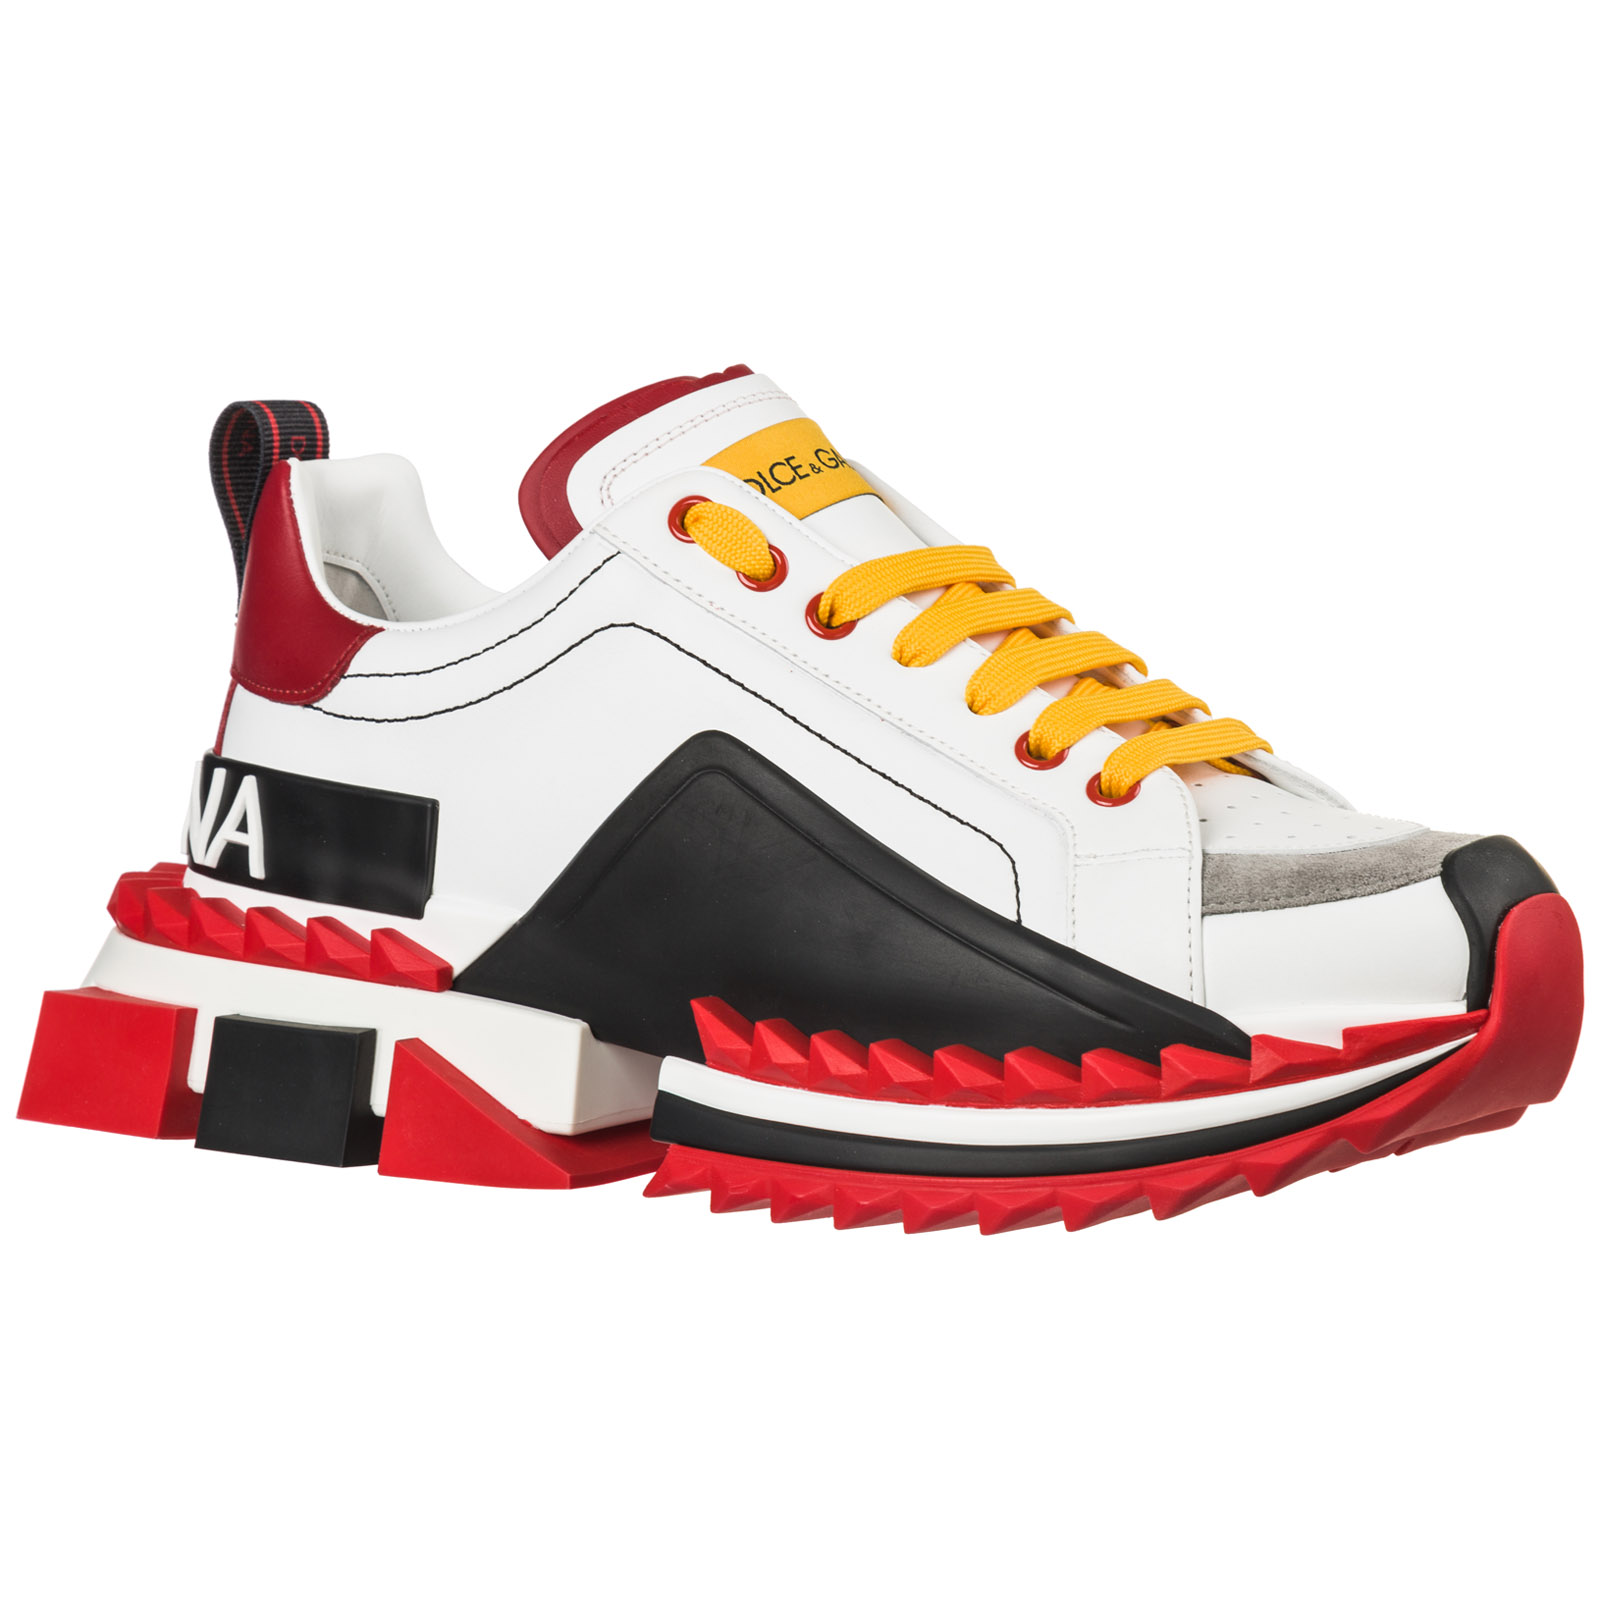 Men's shoes leather trainers sneakers super king